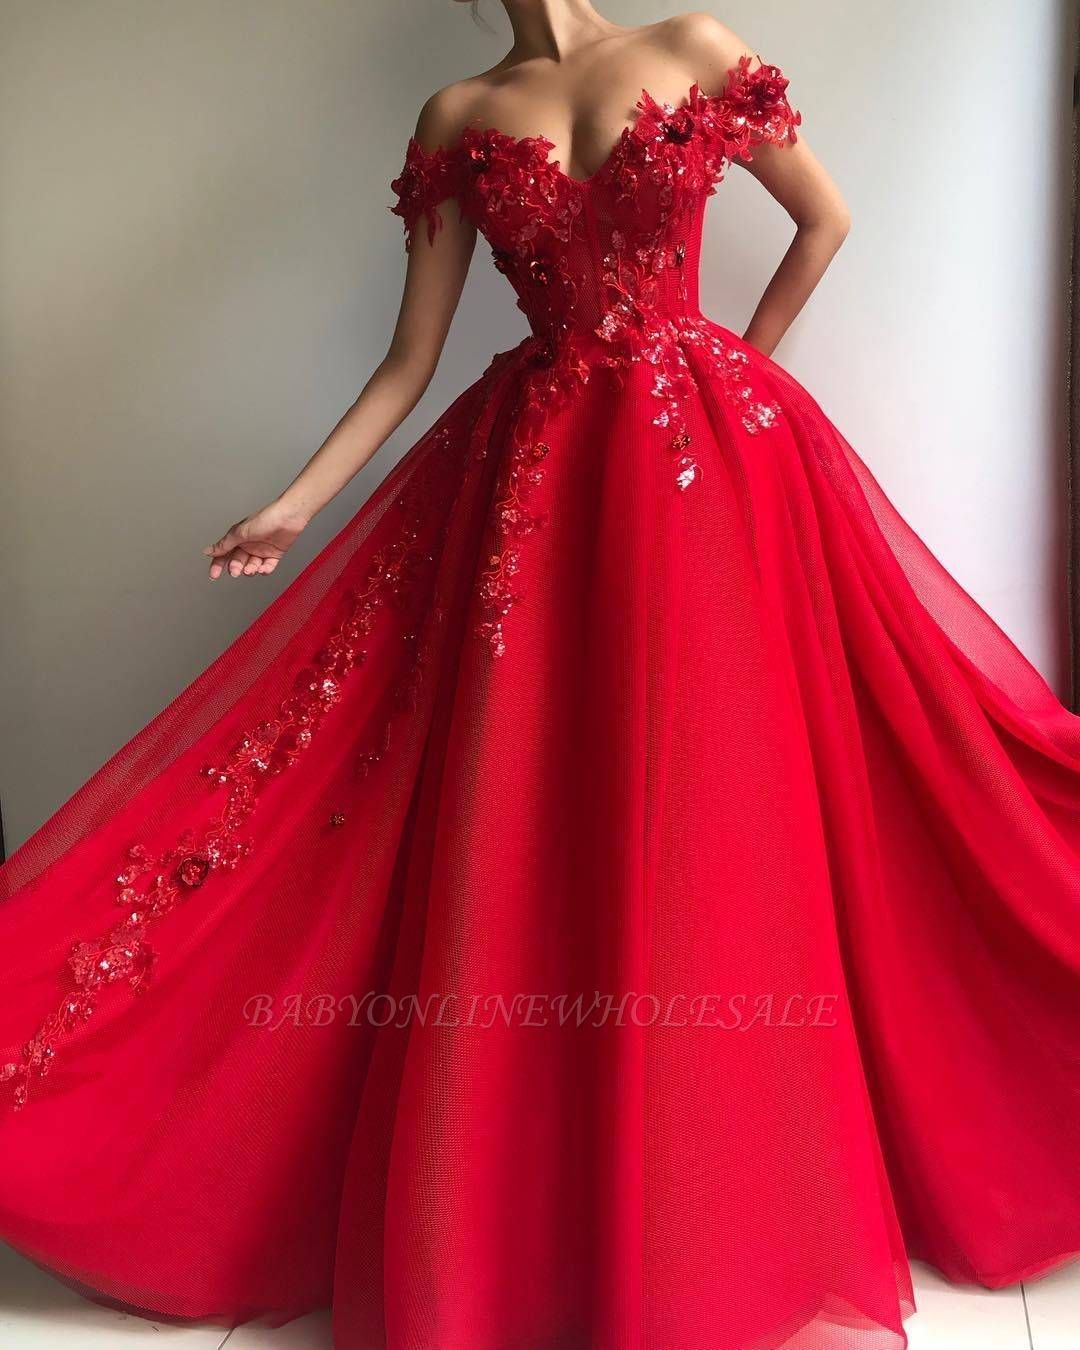 glamorous ball gown off the shoulder applique flow in 2020